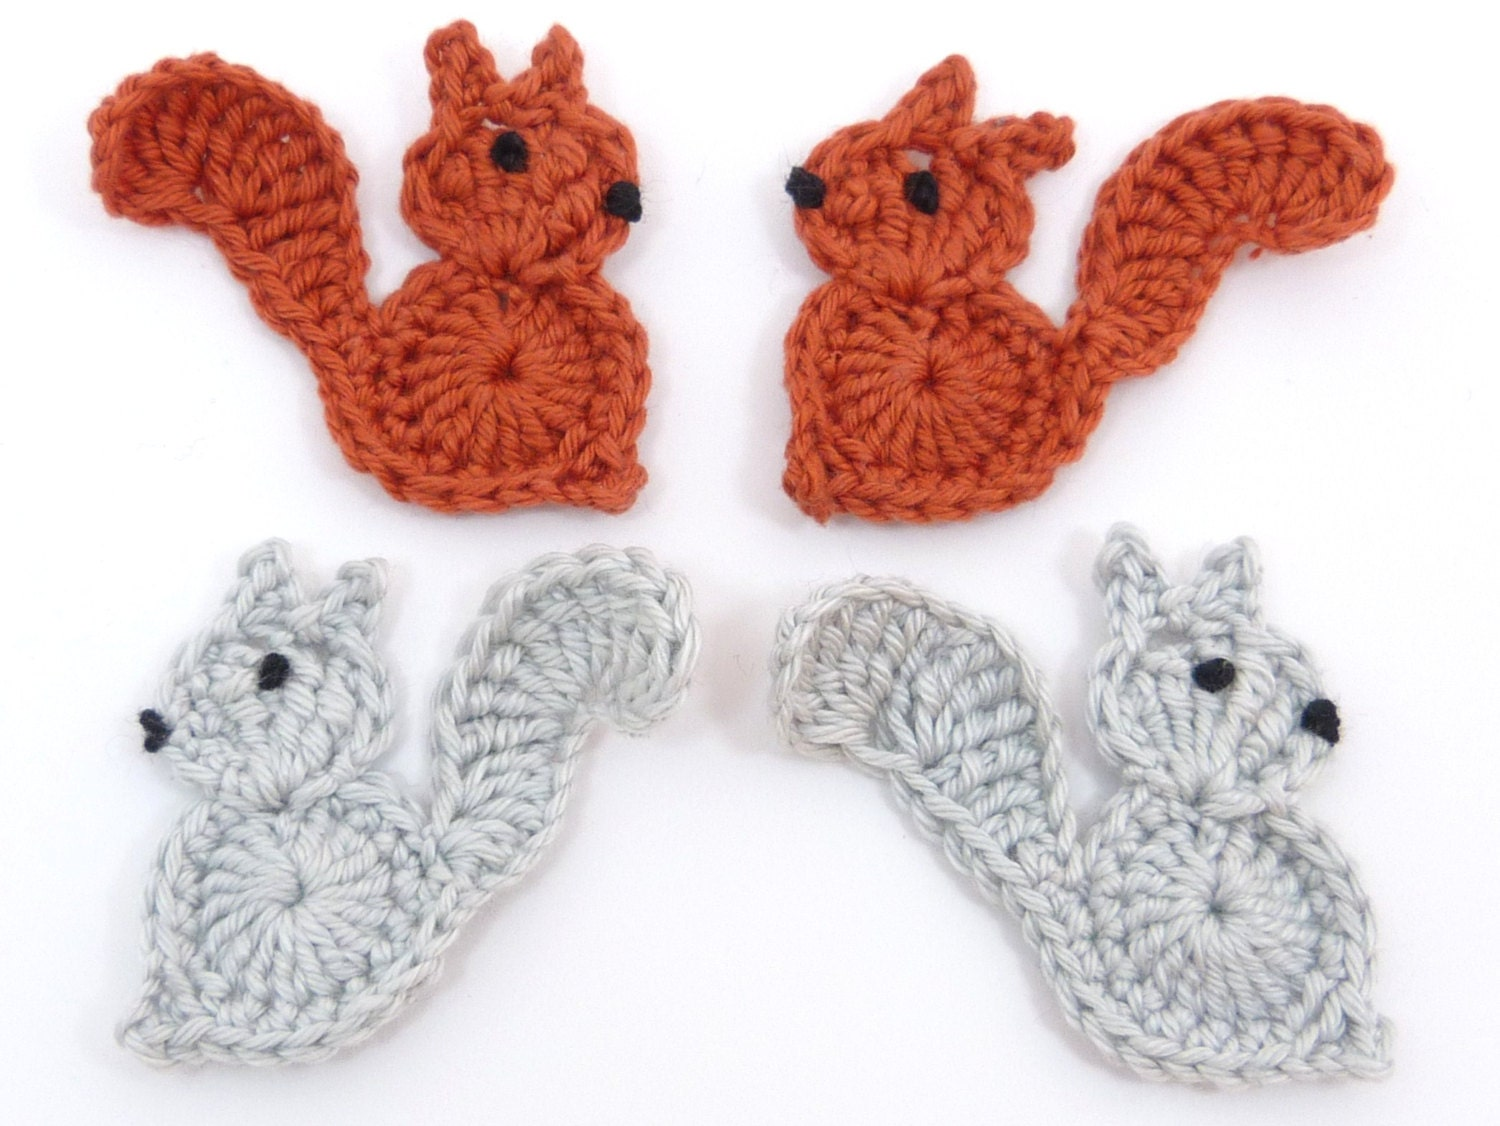 crochet appliques 4 small grey and rust applique squirrels cardmaking scrapbooking appliques. Black Bedroom Furniture Sets. Home Design Ideas